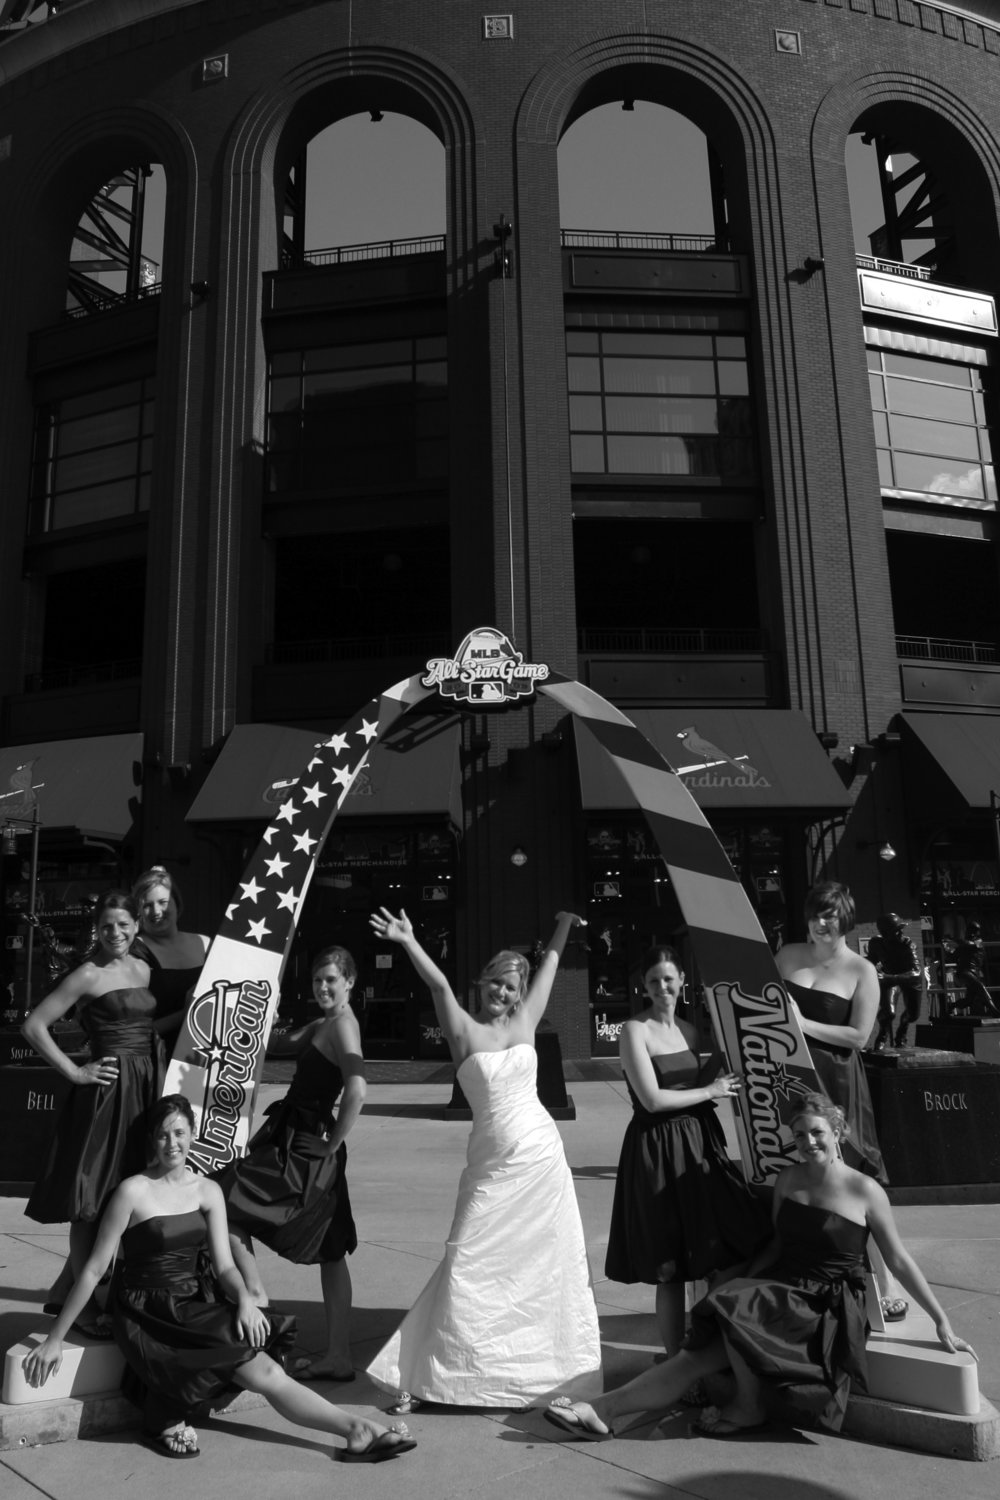 080809 Saturday - (Photography by Chad Greene)